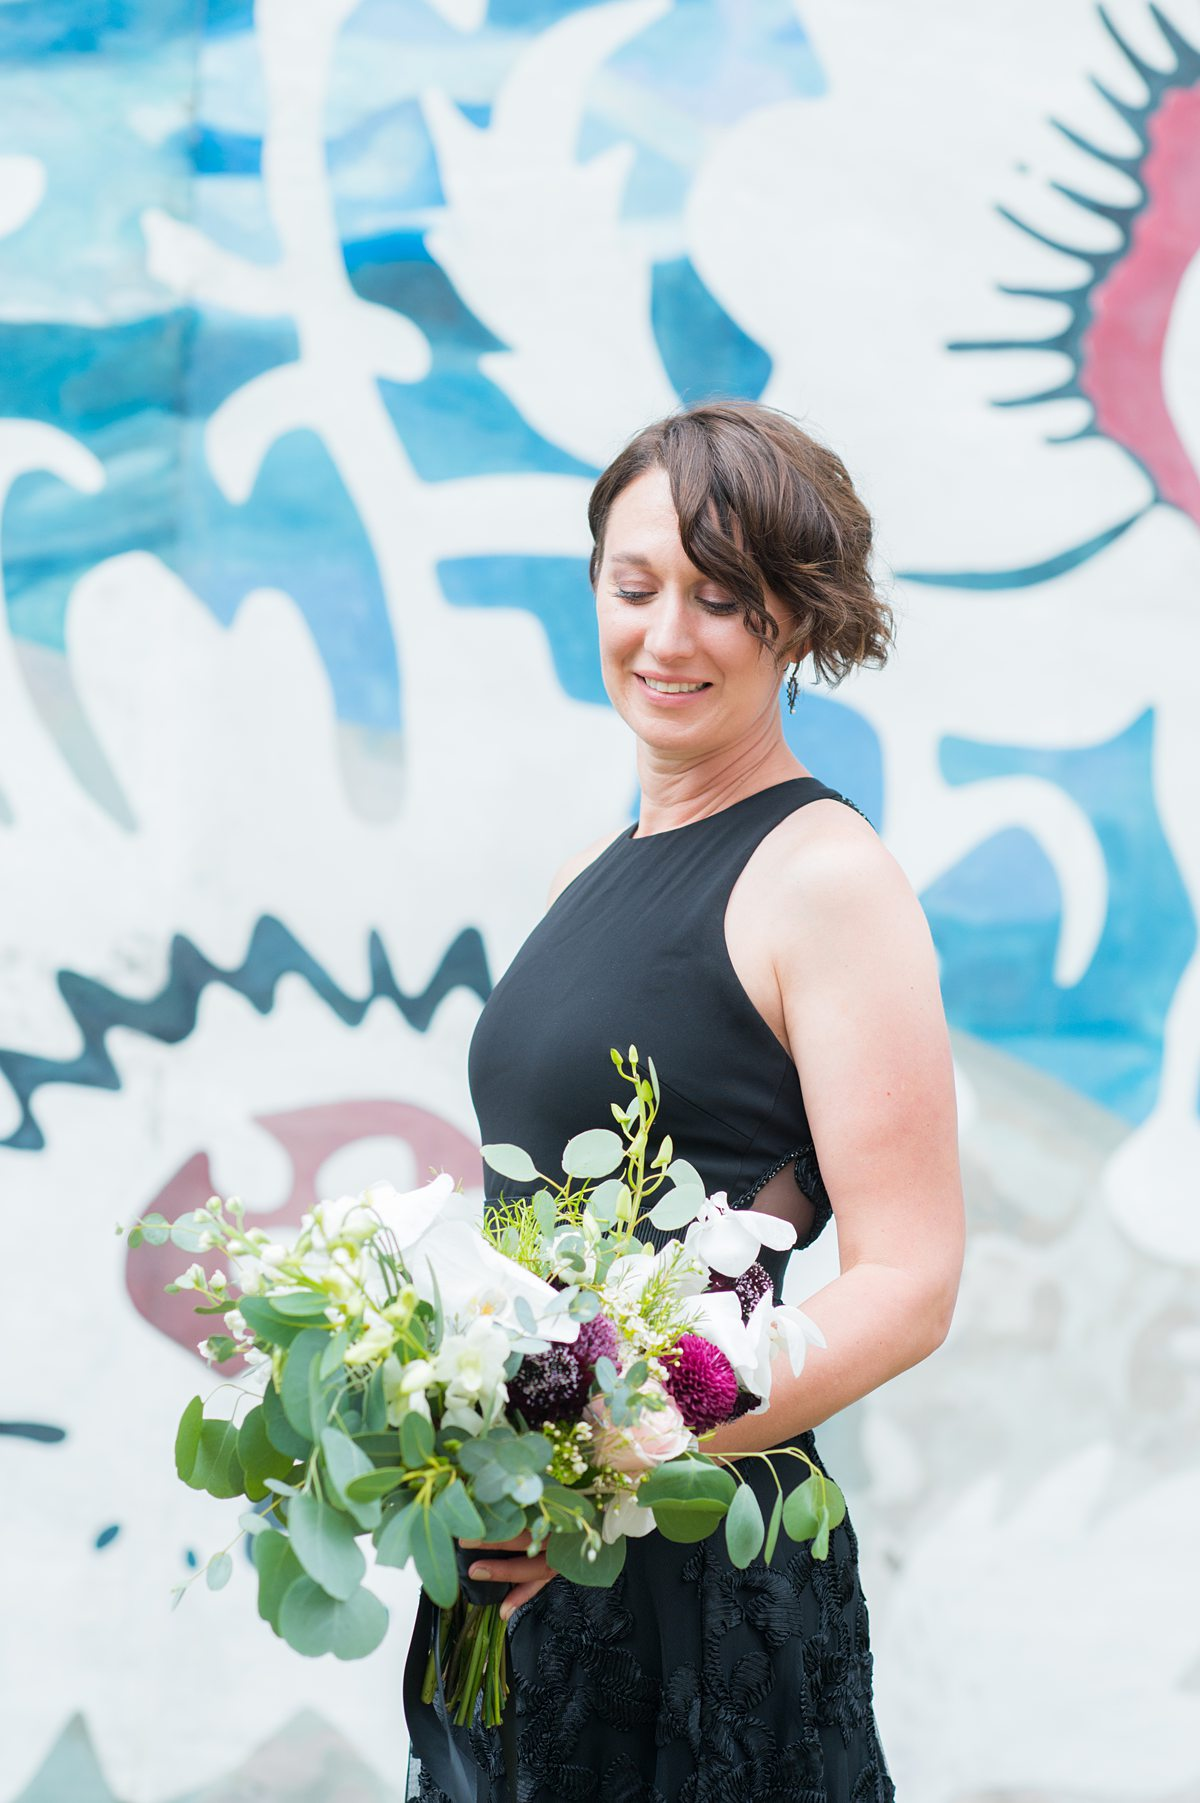 Bride in a black gown with colorful mural behind her.